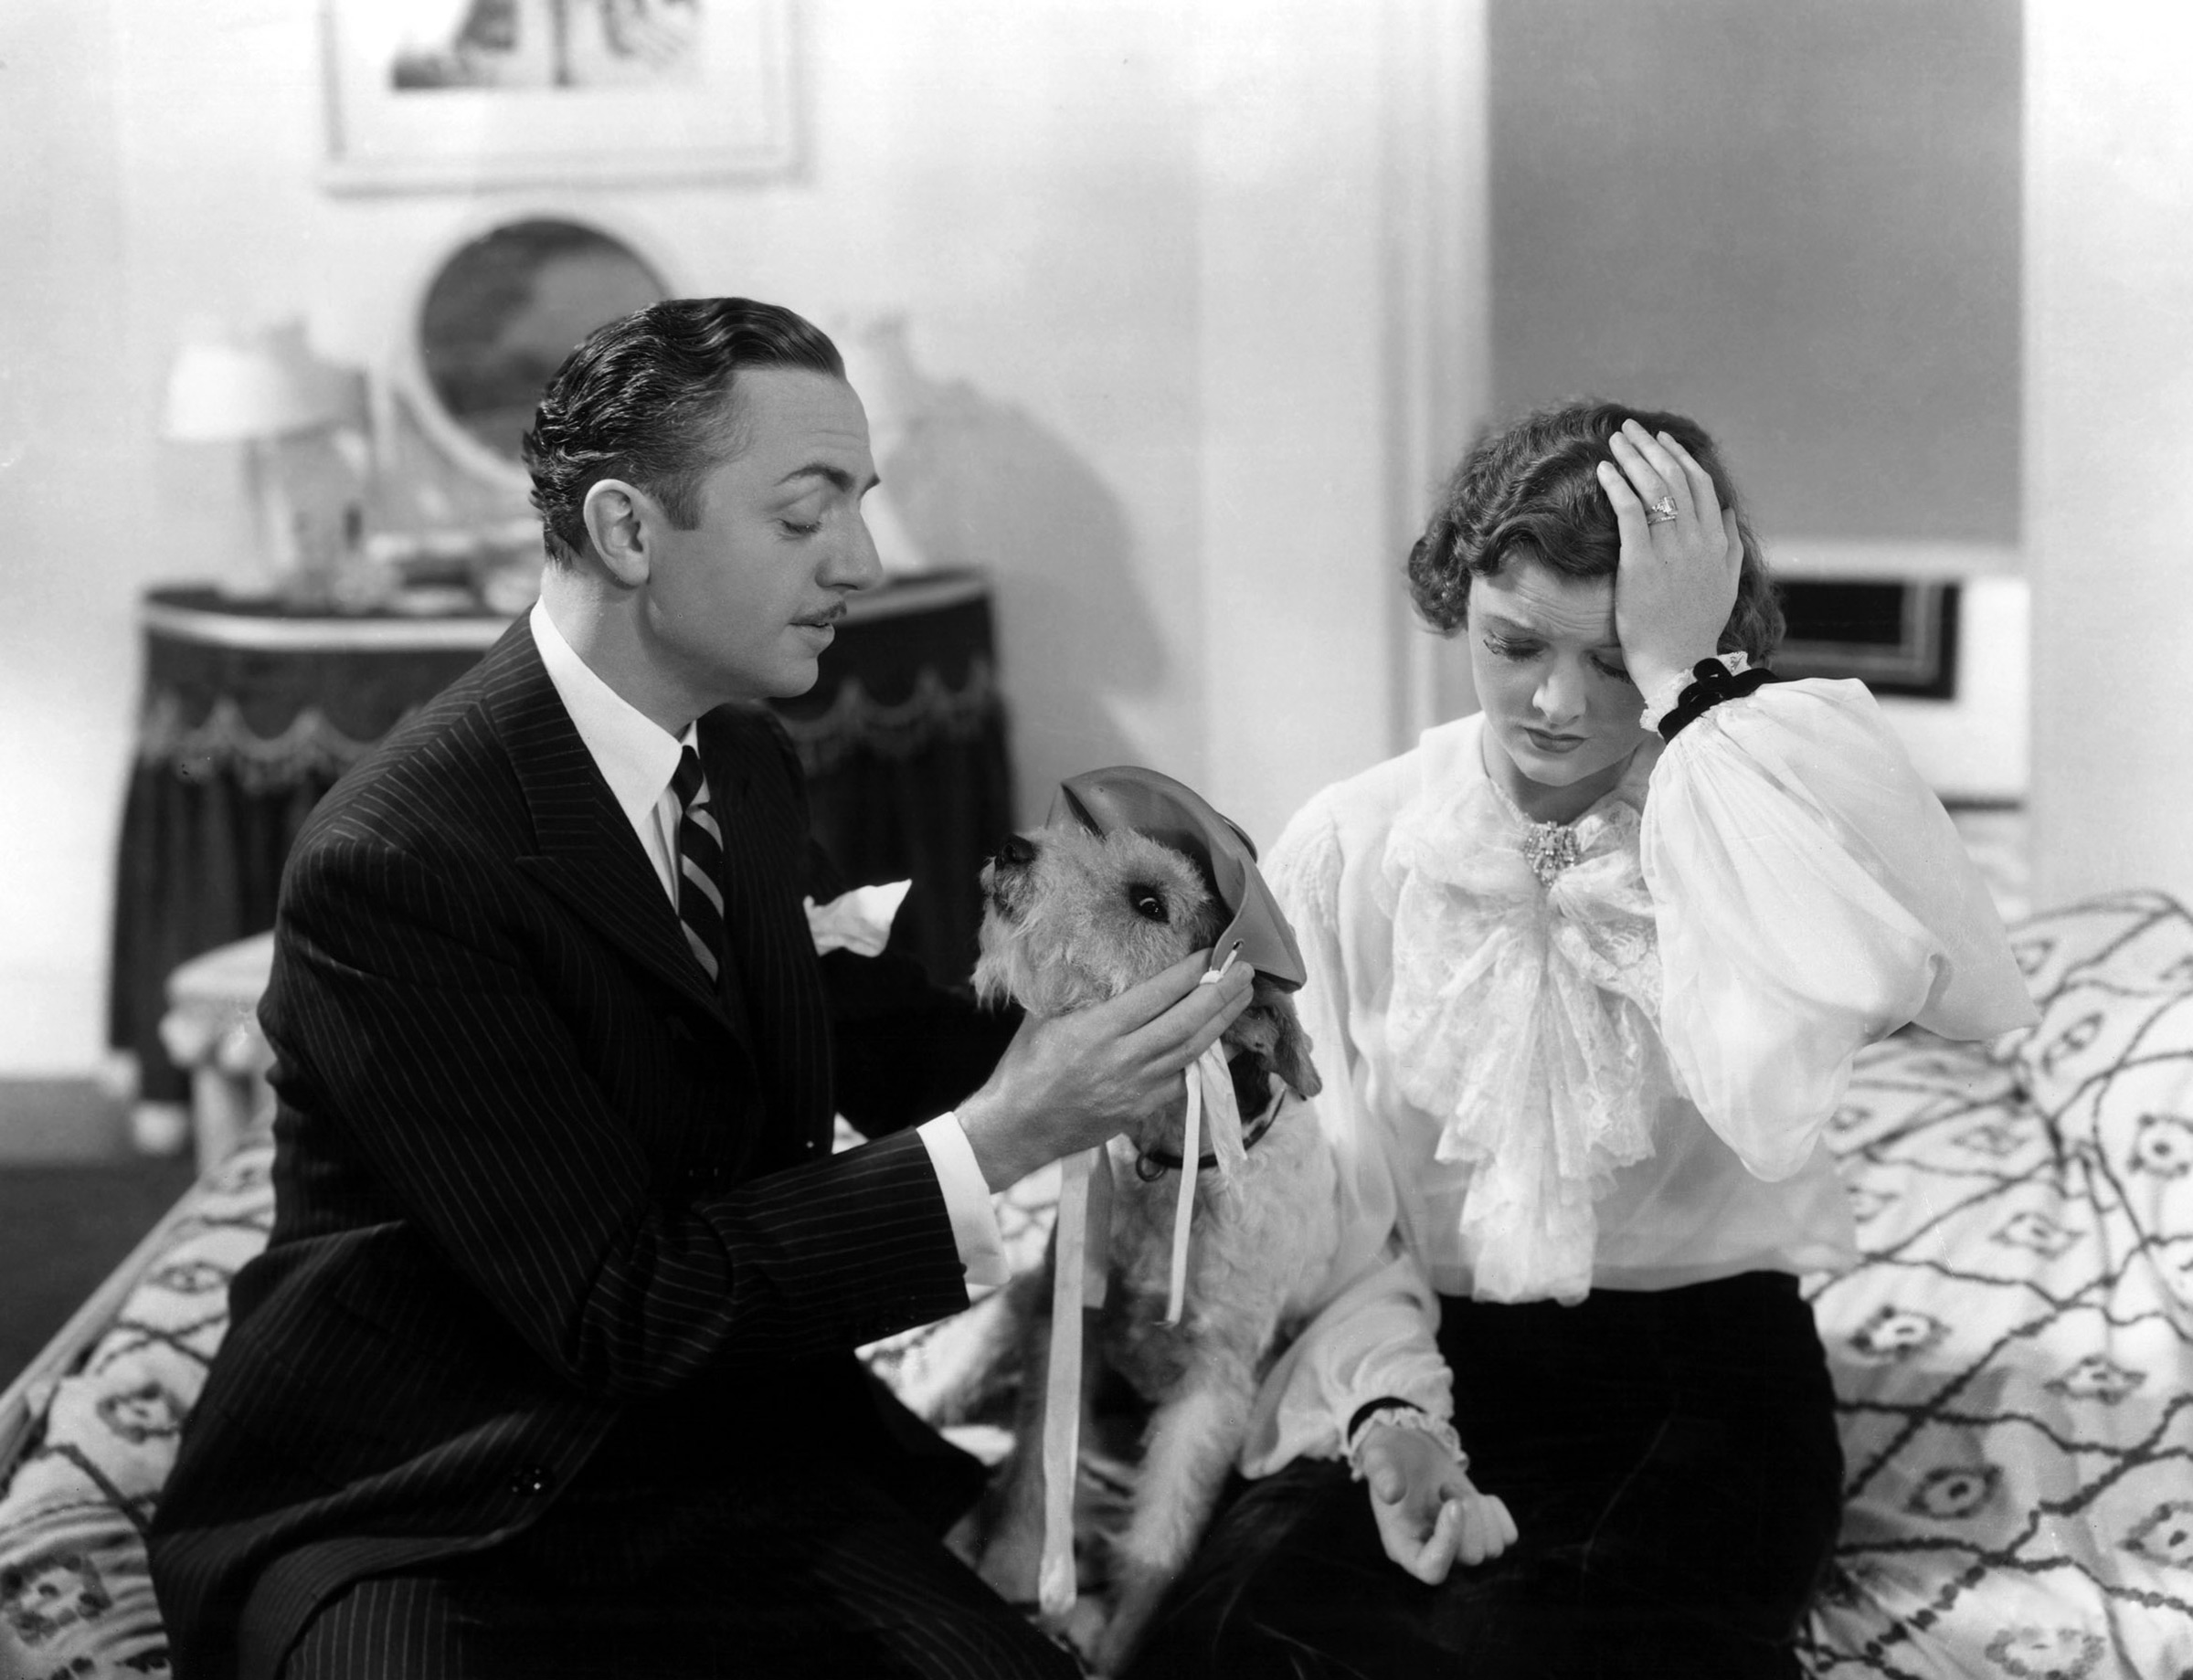 The Thin Man, 1934